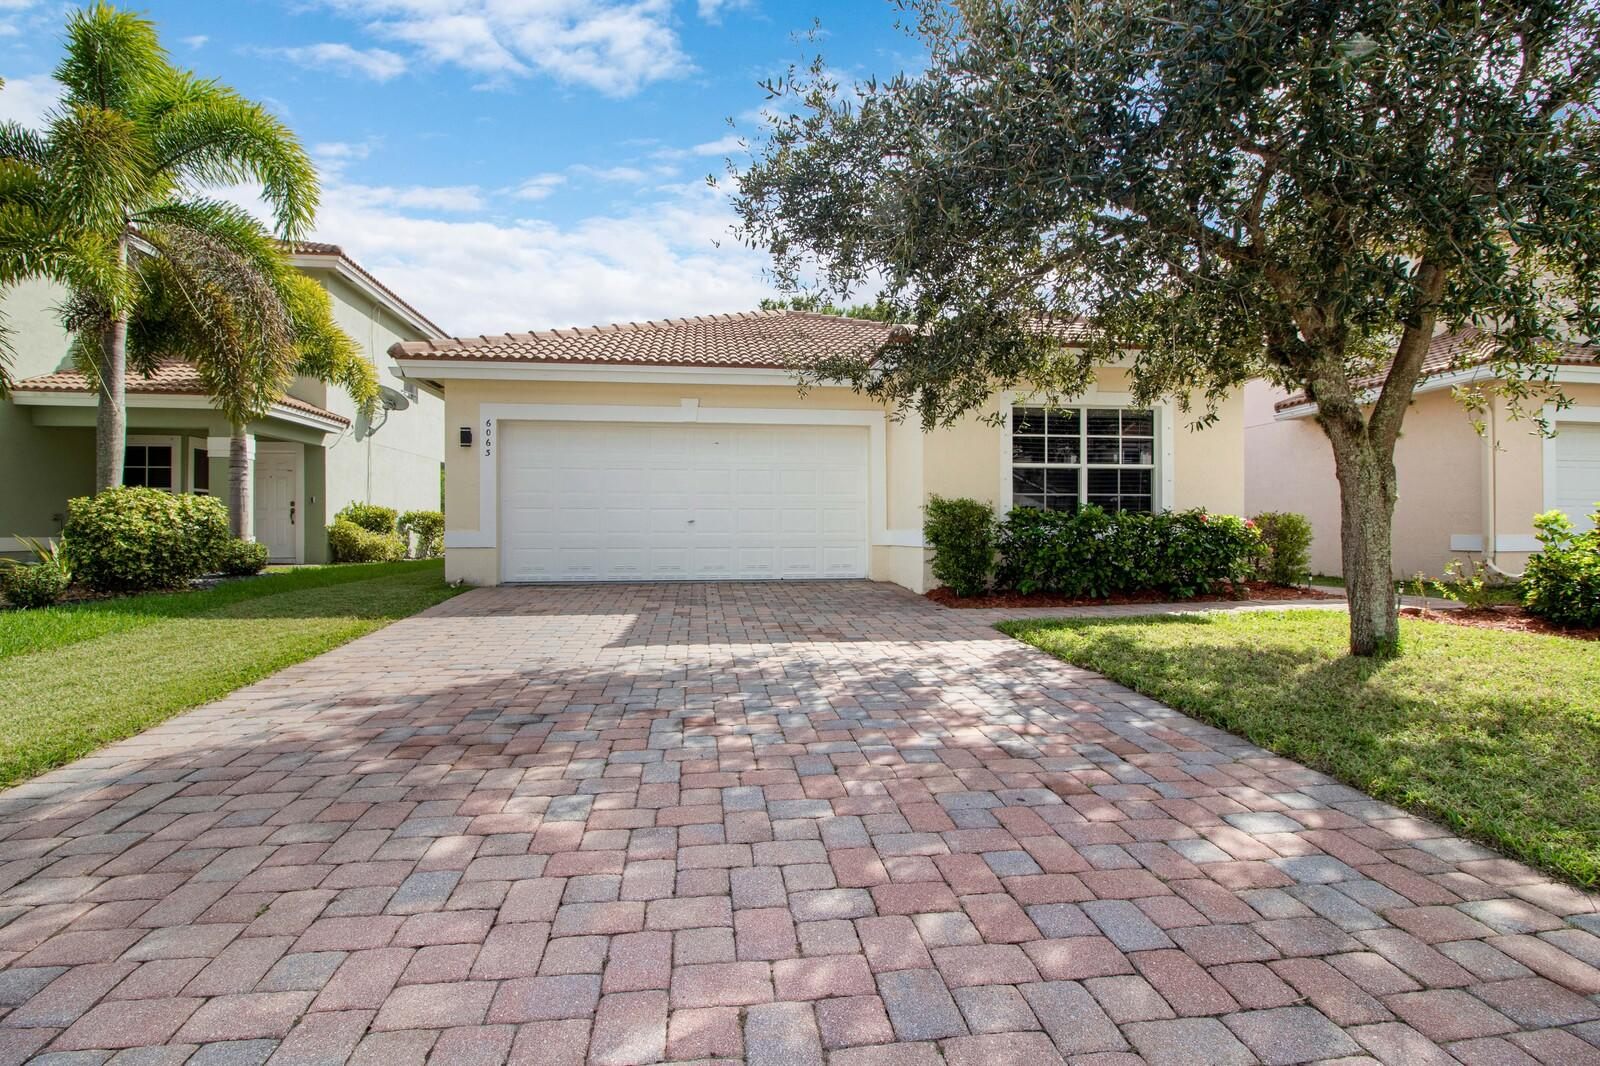 Home for sale in Independence Greenacres Florida